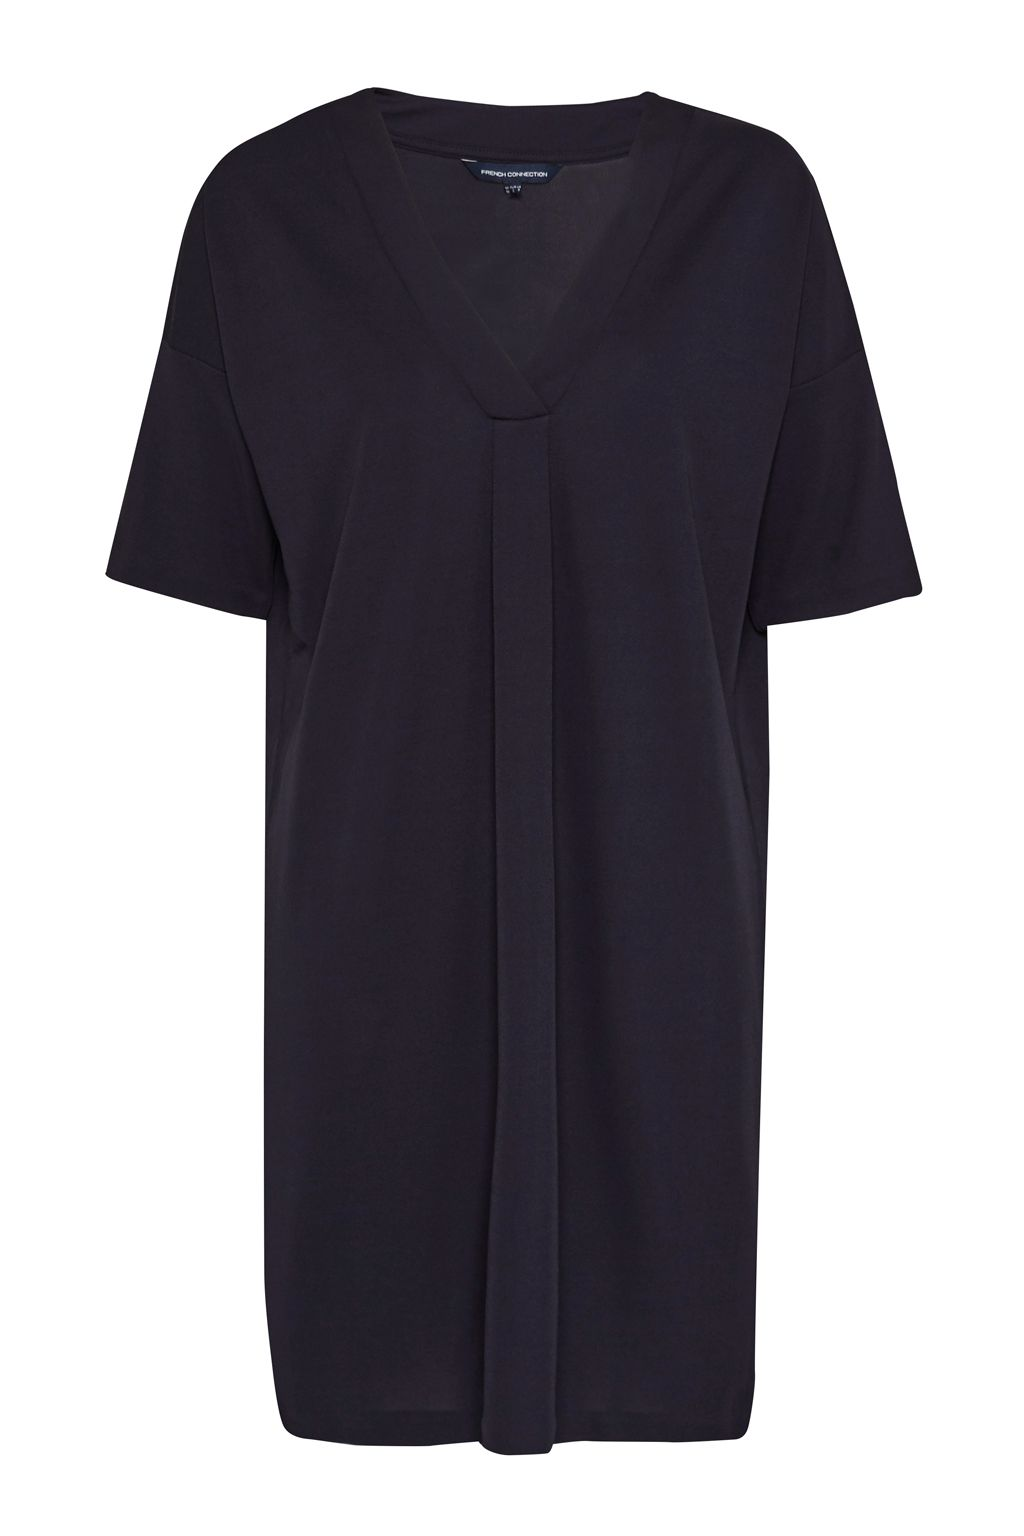 French Connection Bottero Drape V Neck Shift Dress, Blue